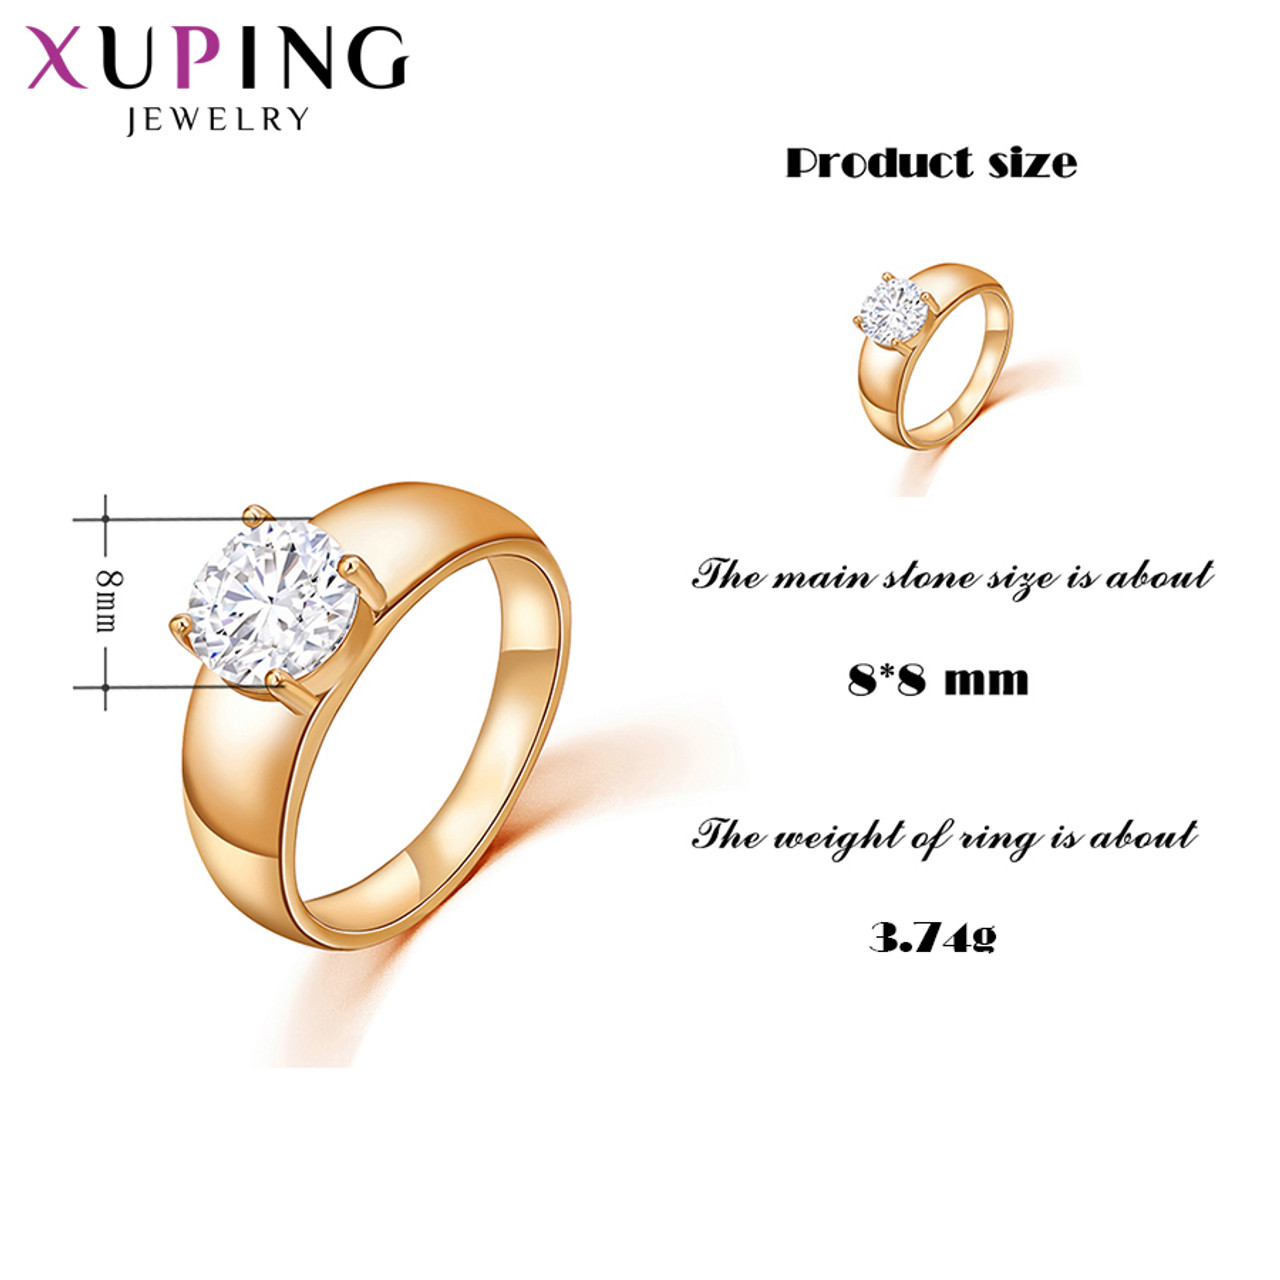 3c822dd34 ... Xuping Christmas Luxury Ring Popular Design Charm Style Girl Women Gold  Color Plated Jewelry Valentine's Day ...